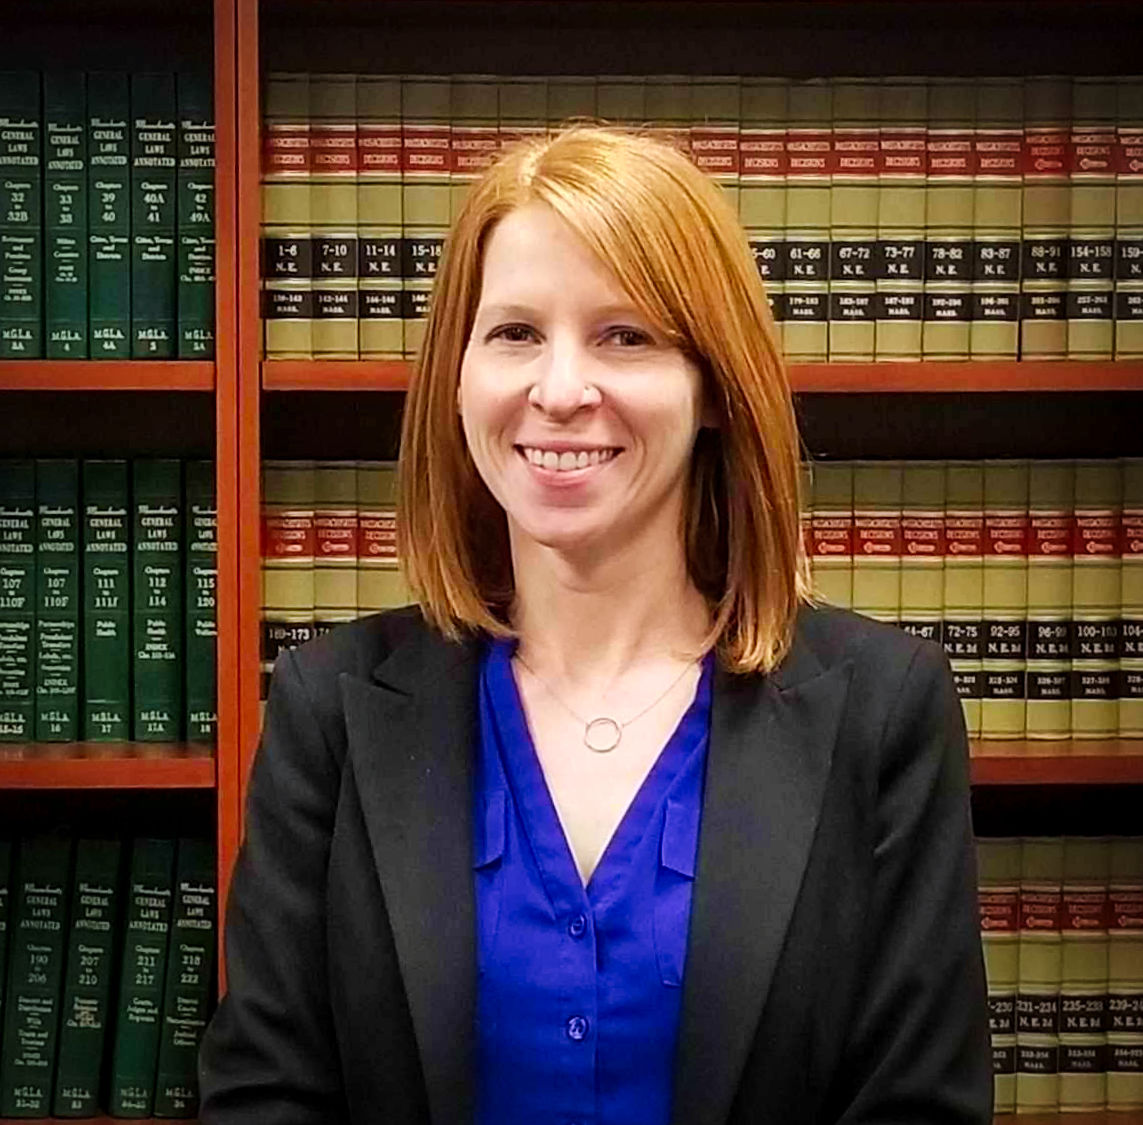 Cekala announces she's a andidate for probate judge